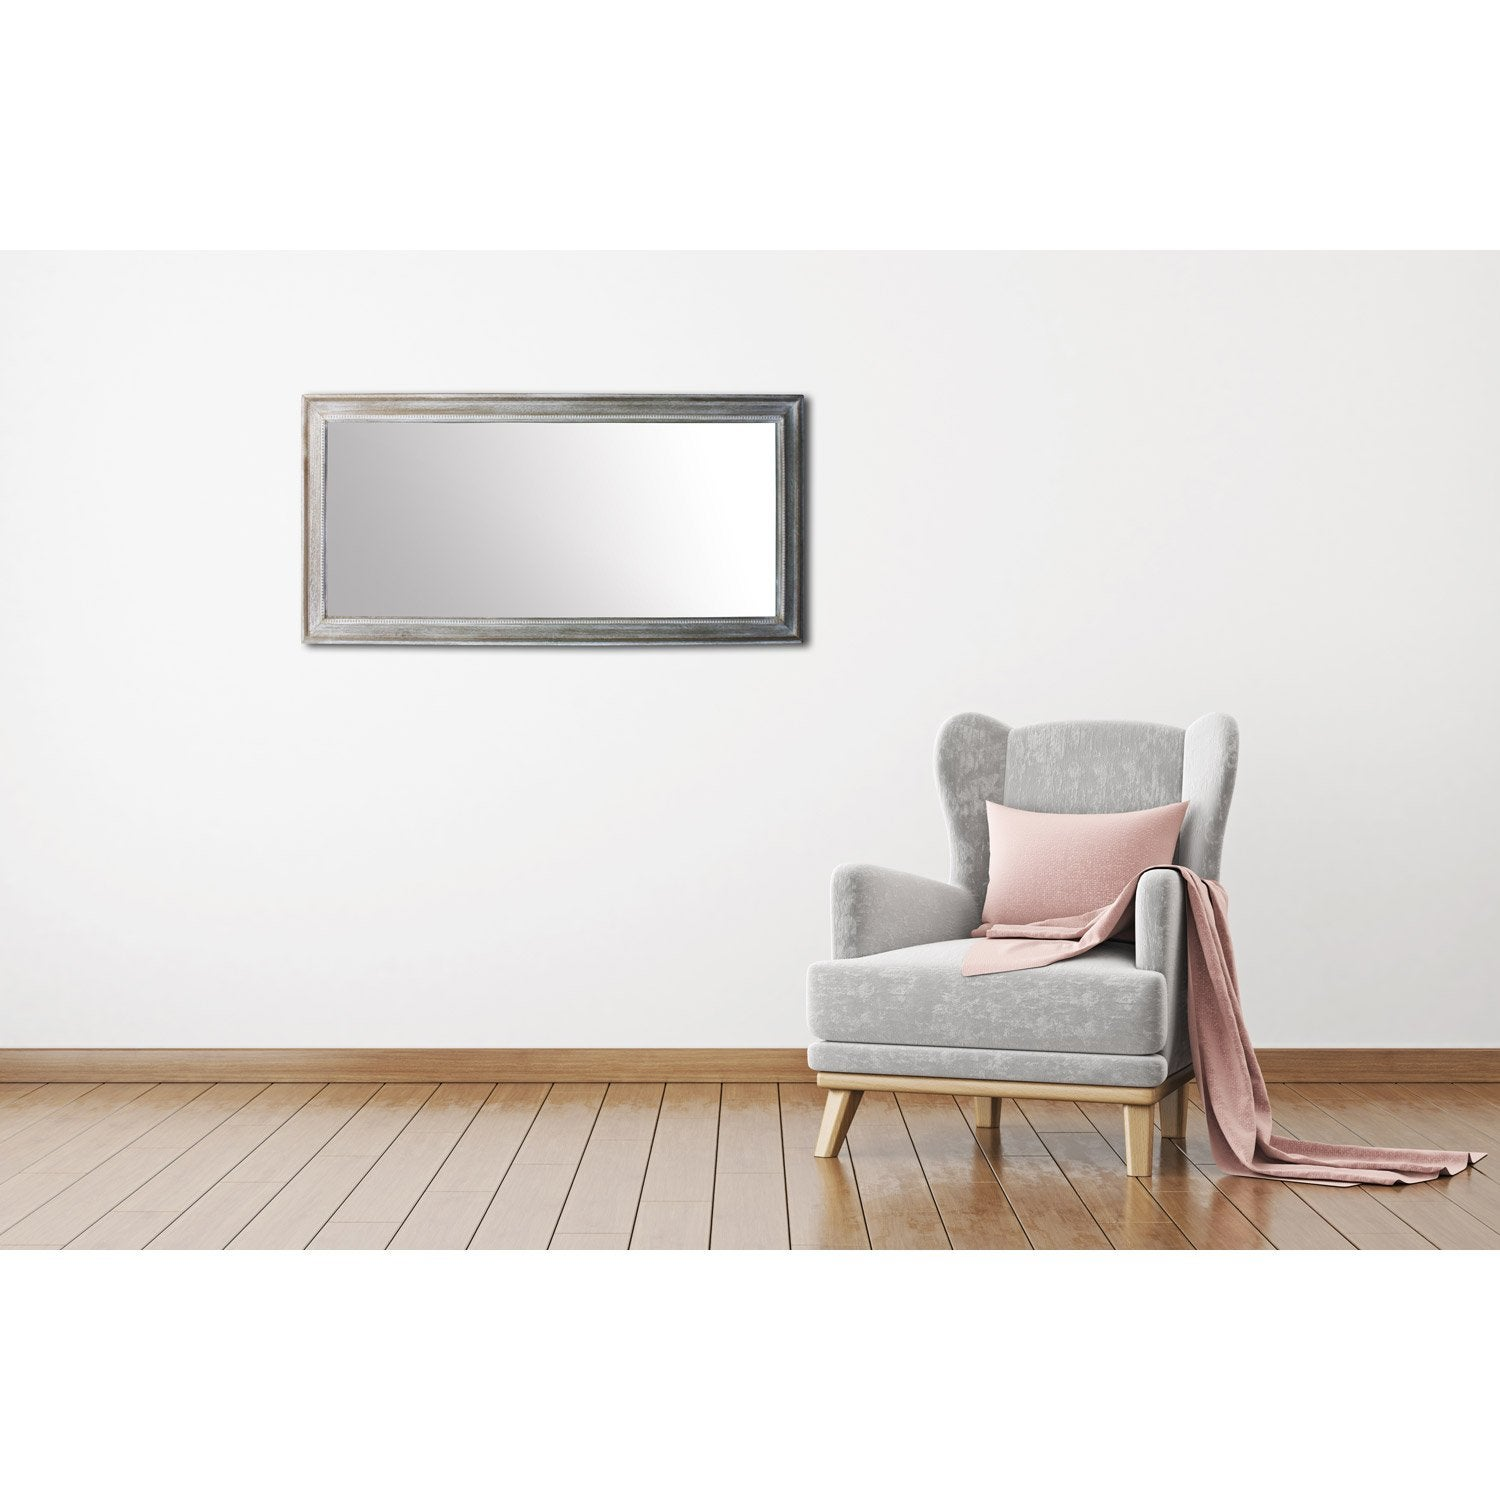 Grand Miroir Mural Leroy Merlin Interesting Grand Miroir Noir Grand